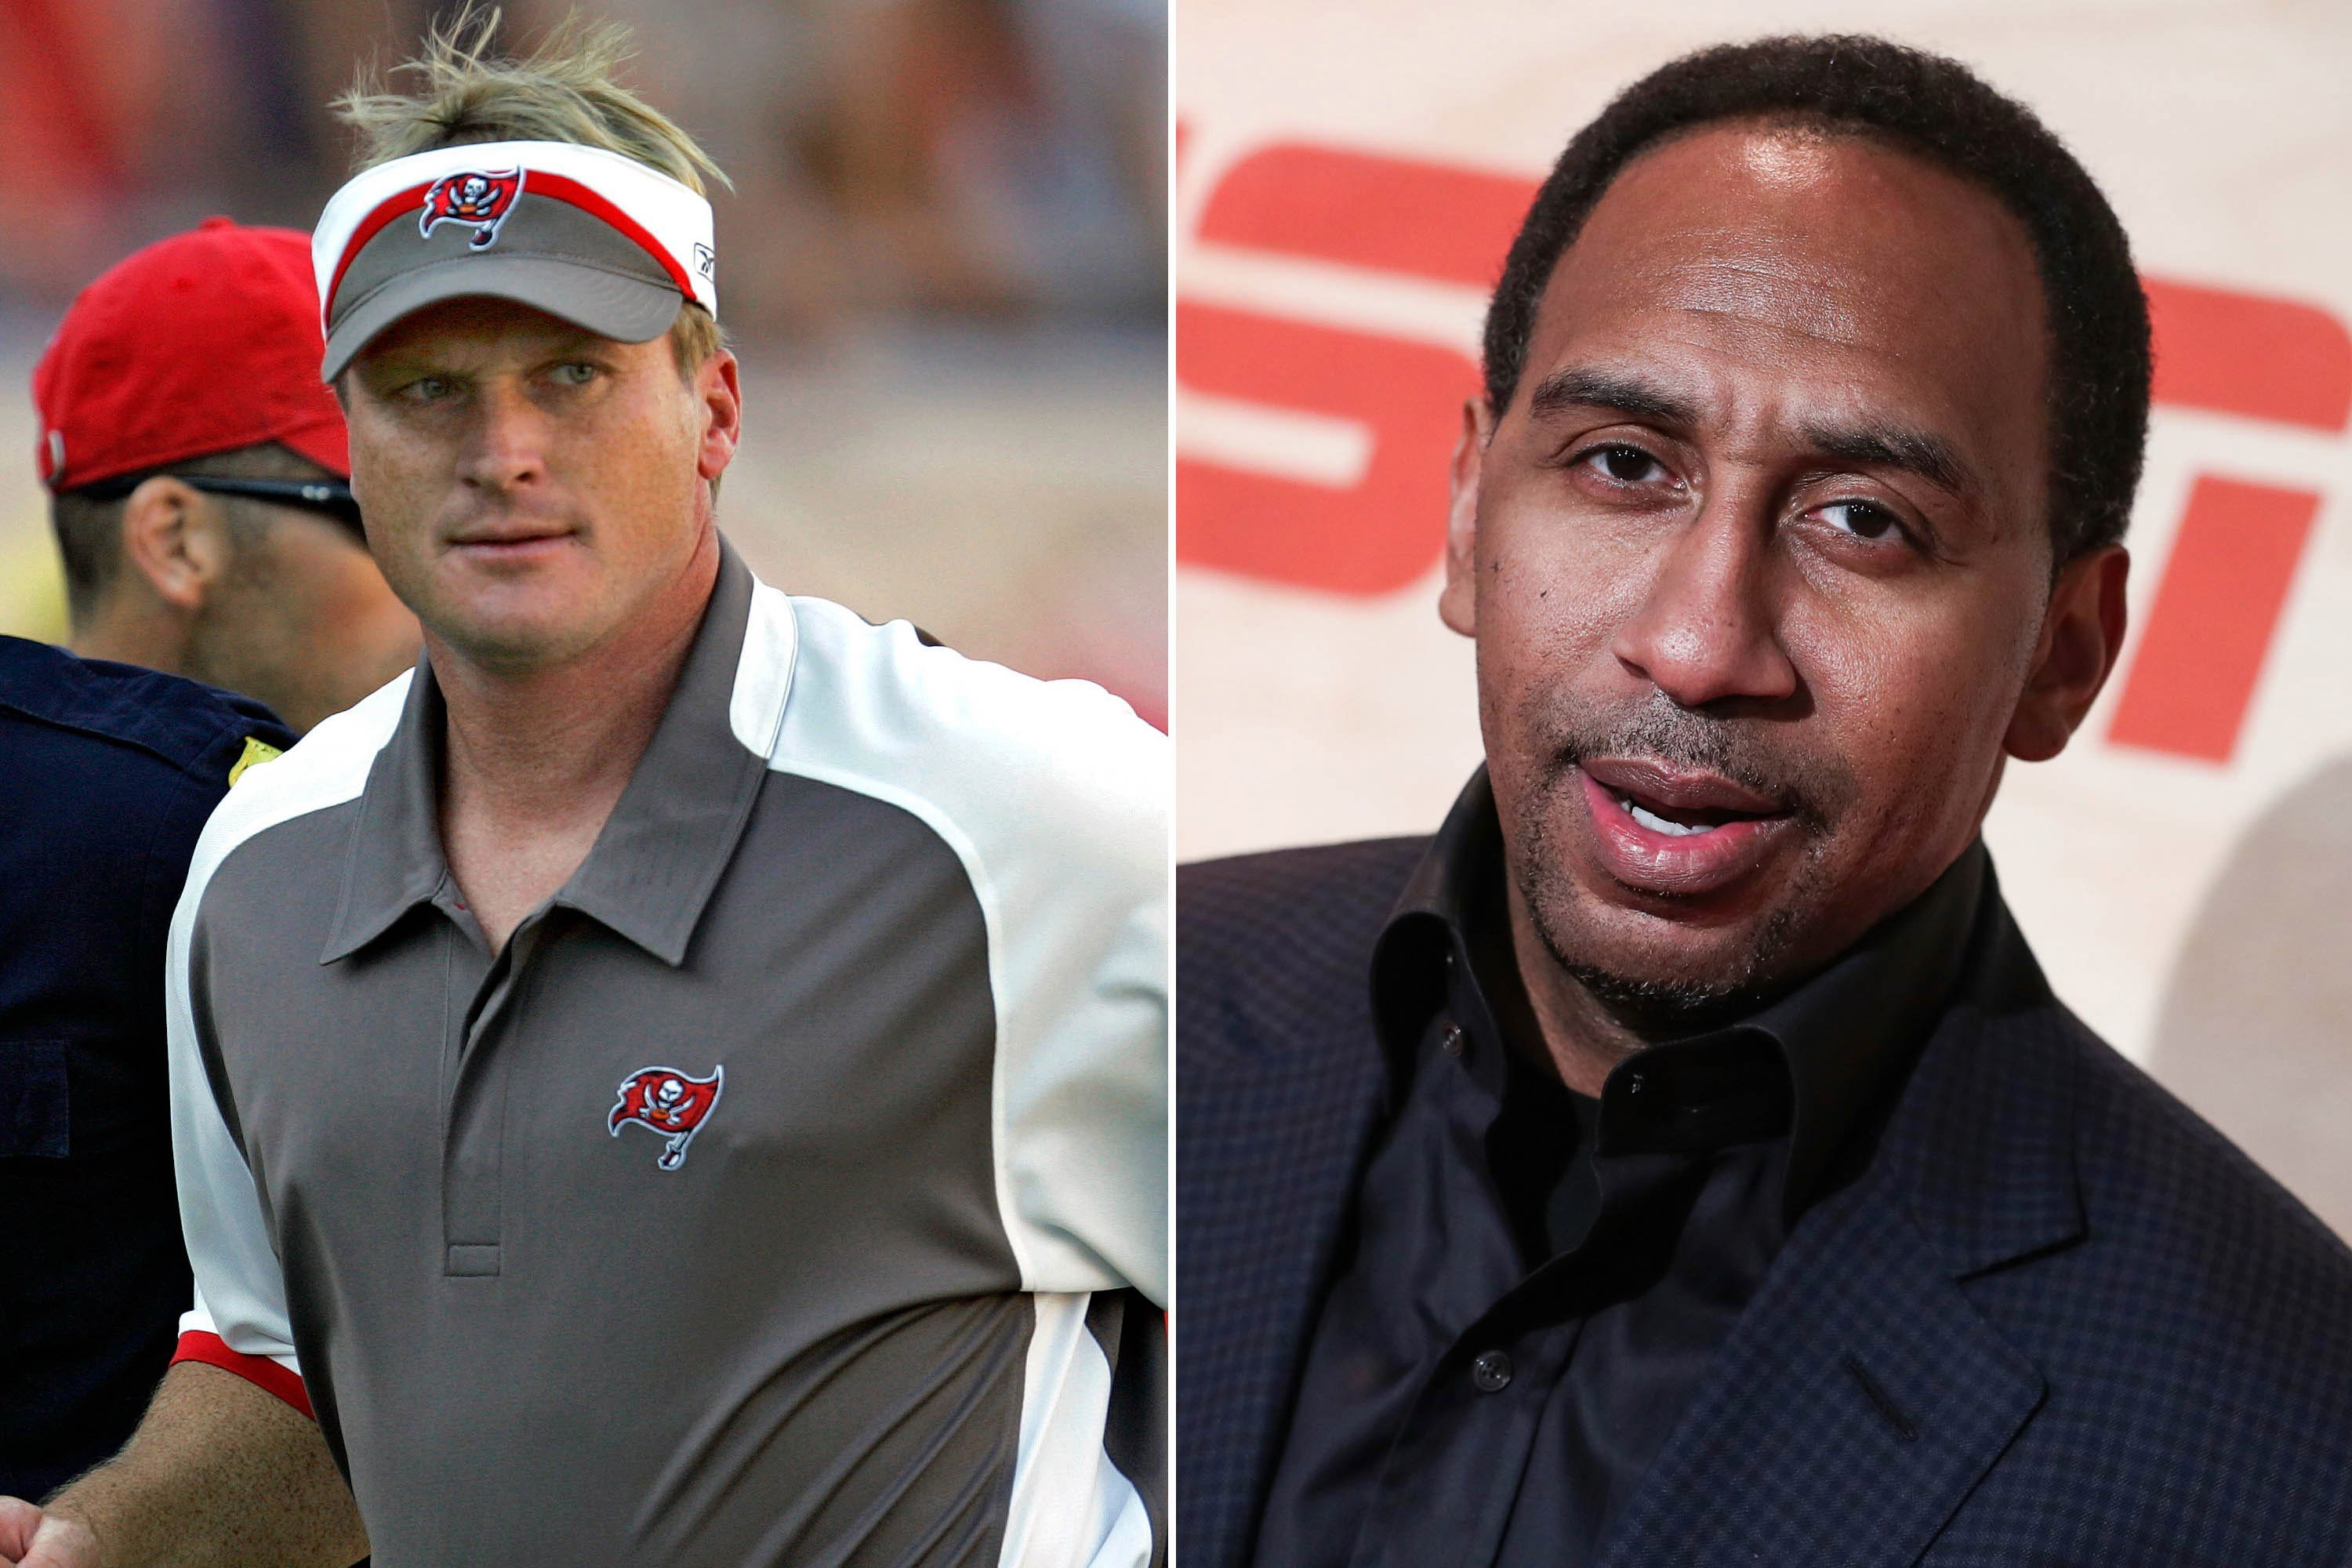 Jon Gruden mocks Stephen A. and ESPN report on his way out